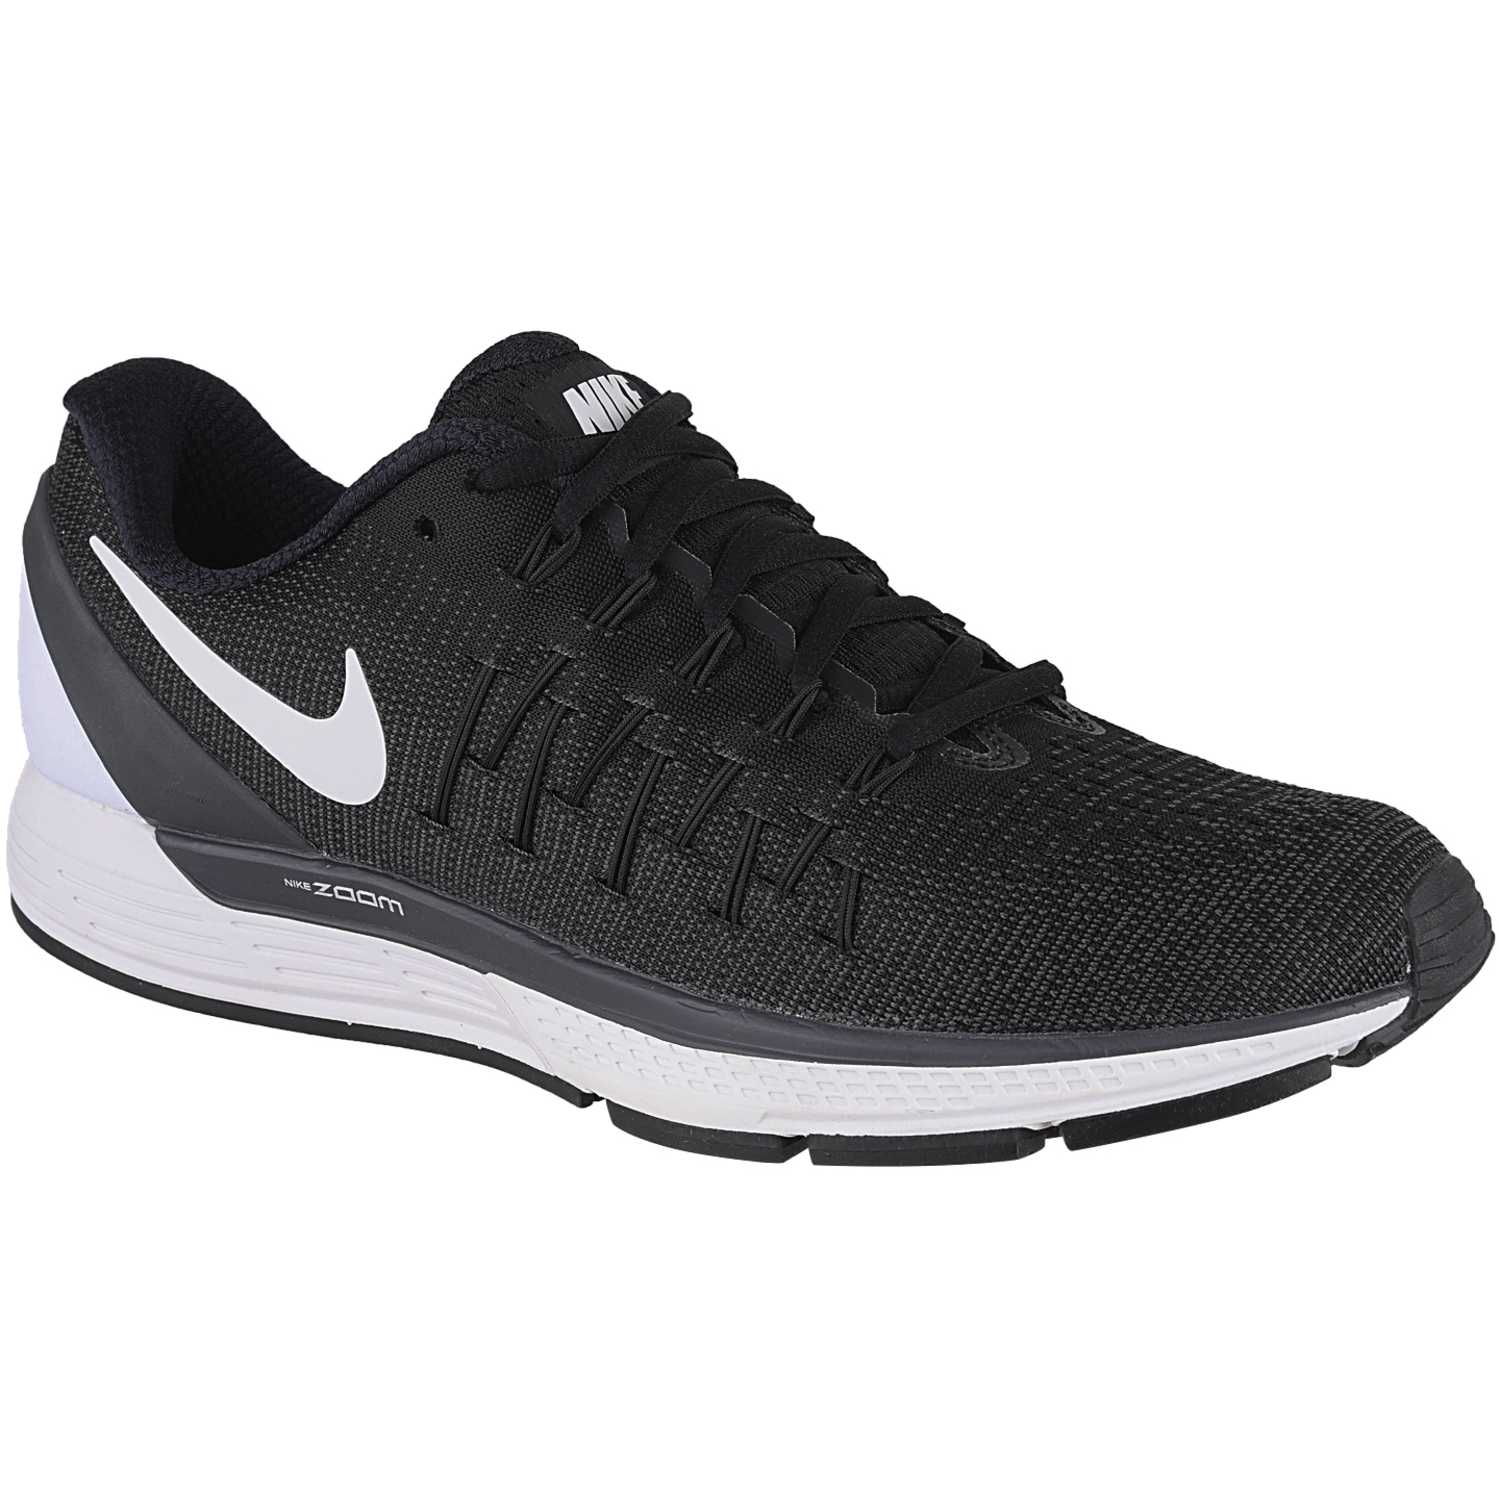 detailed look 25753 d8481 Zapatilla de Hombre Nike Negro   blanco air zoom odyssey 2